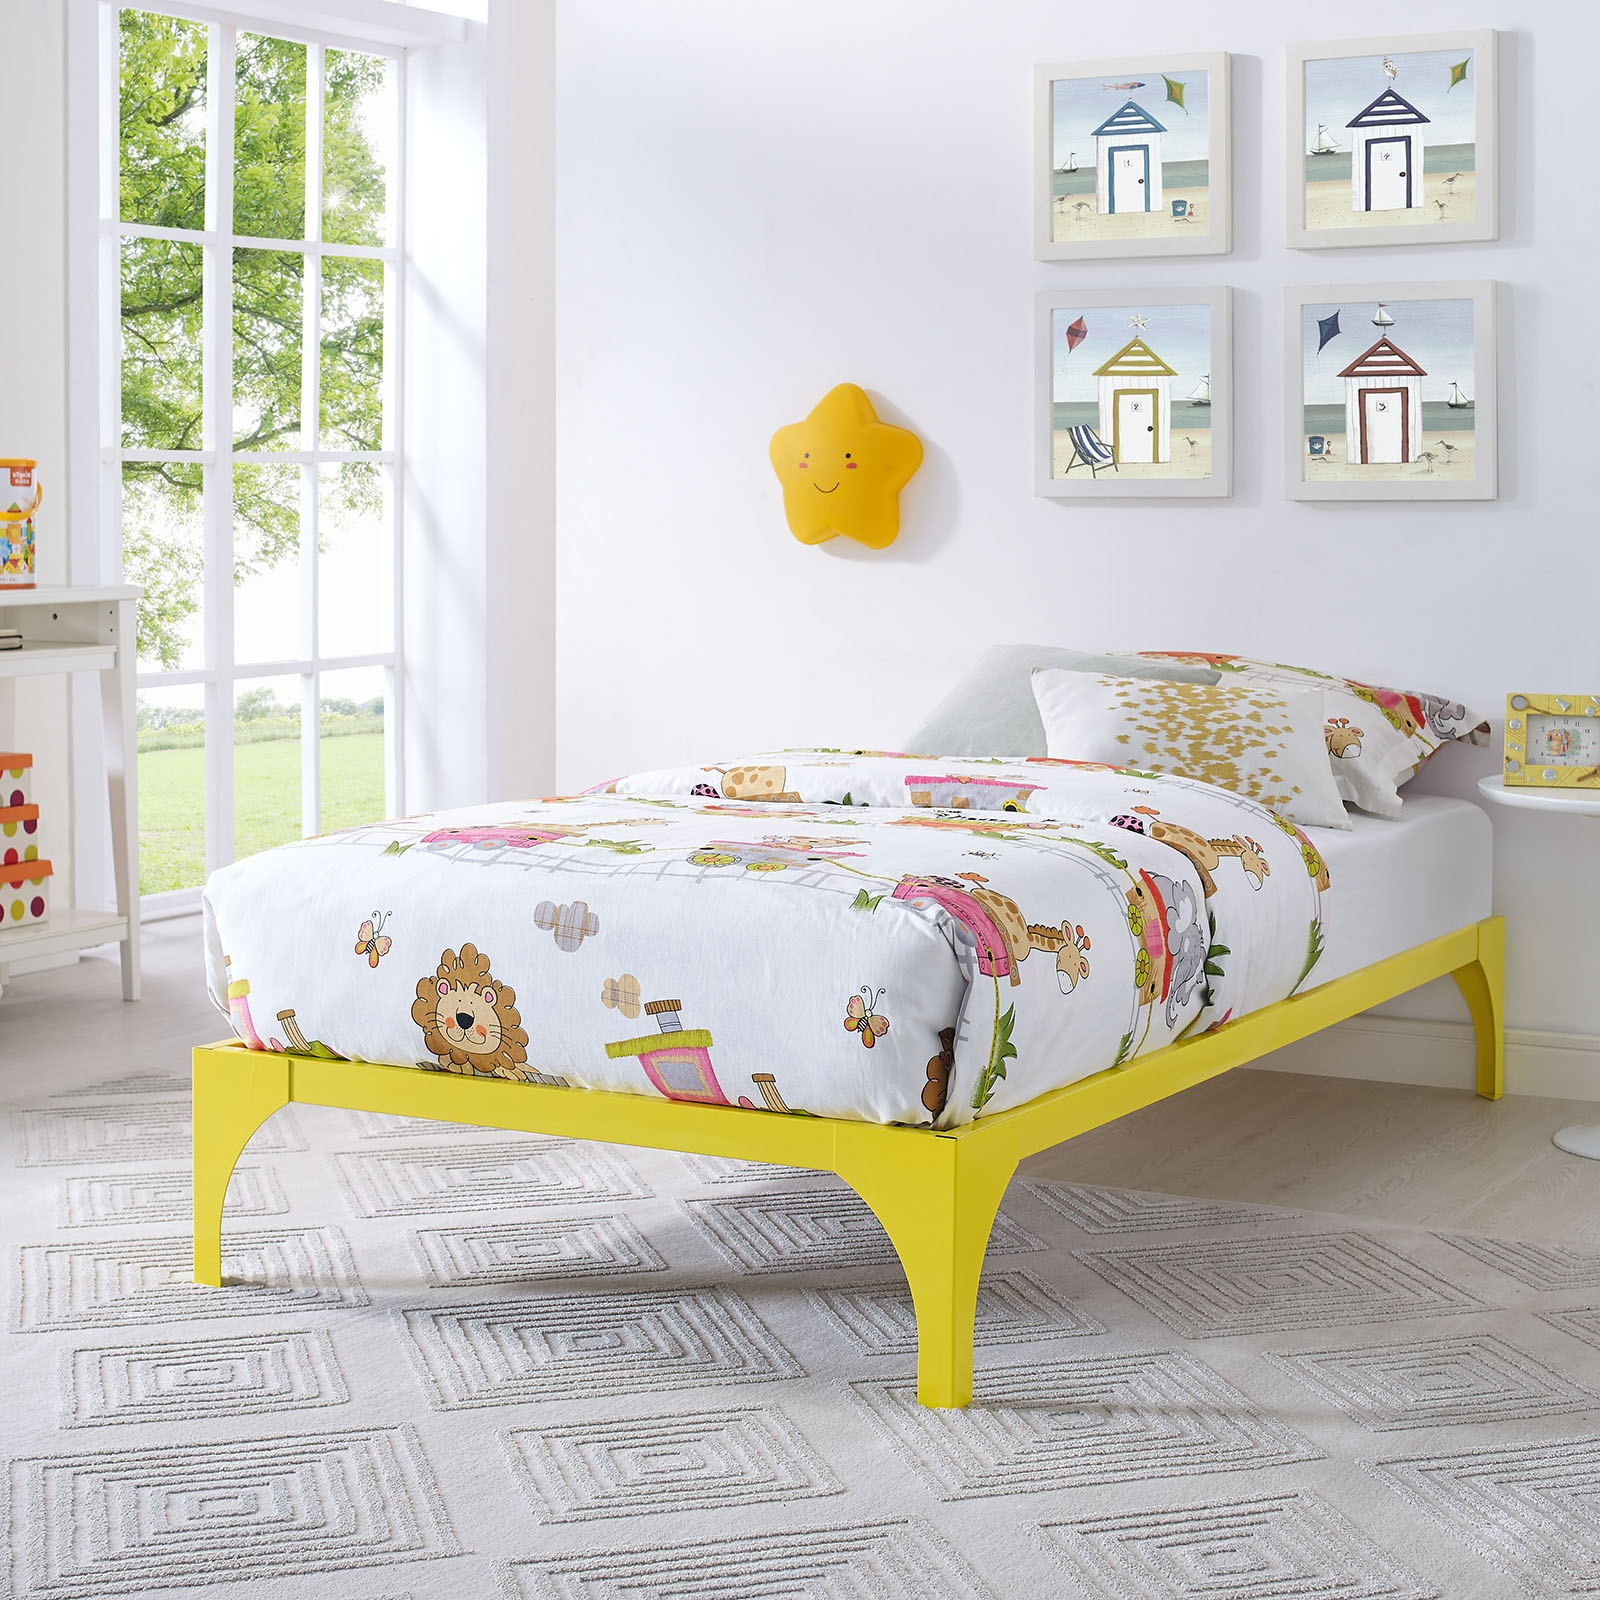 Yellow Wire Bed Framemodway mod 5747 ylw ollie twin bed frame in powder coated yellow steel